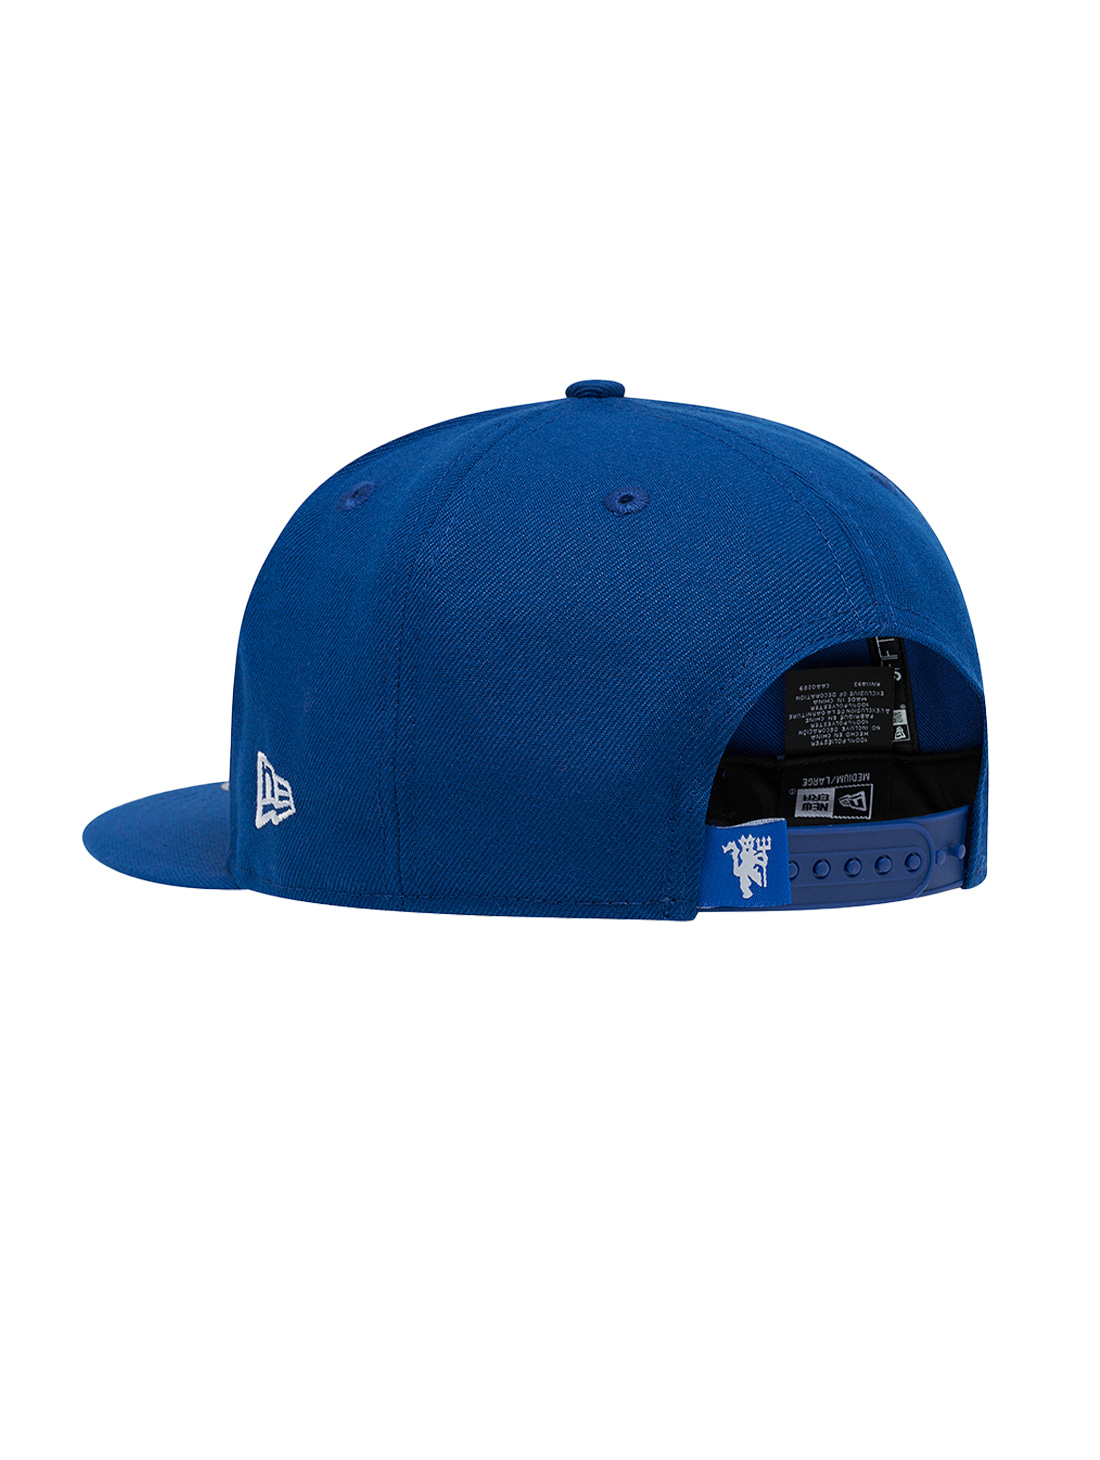 GOALSTUDIO MAN U 950 SNAPBACK - BLUE